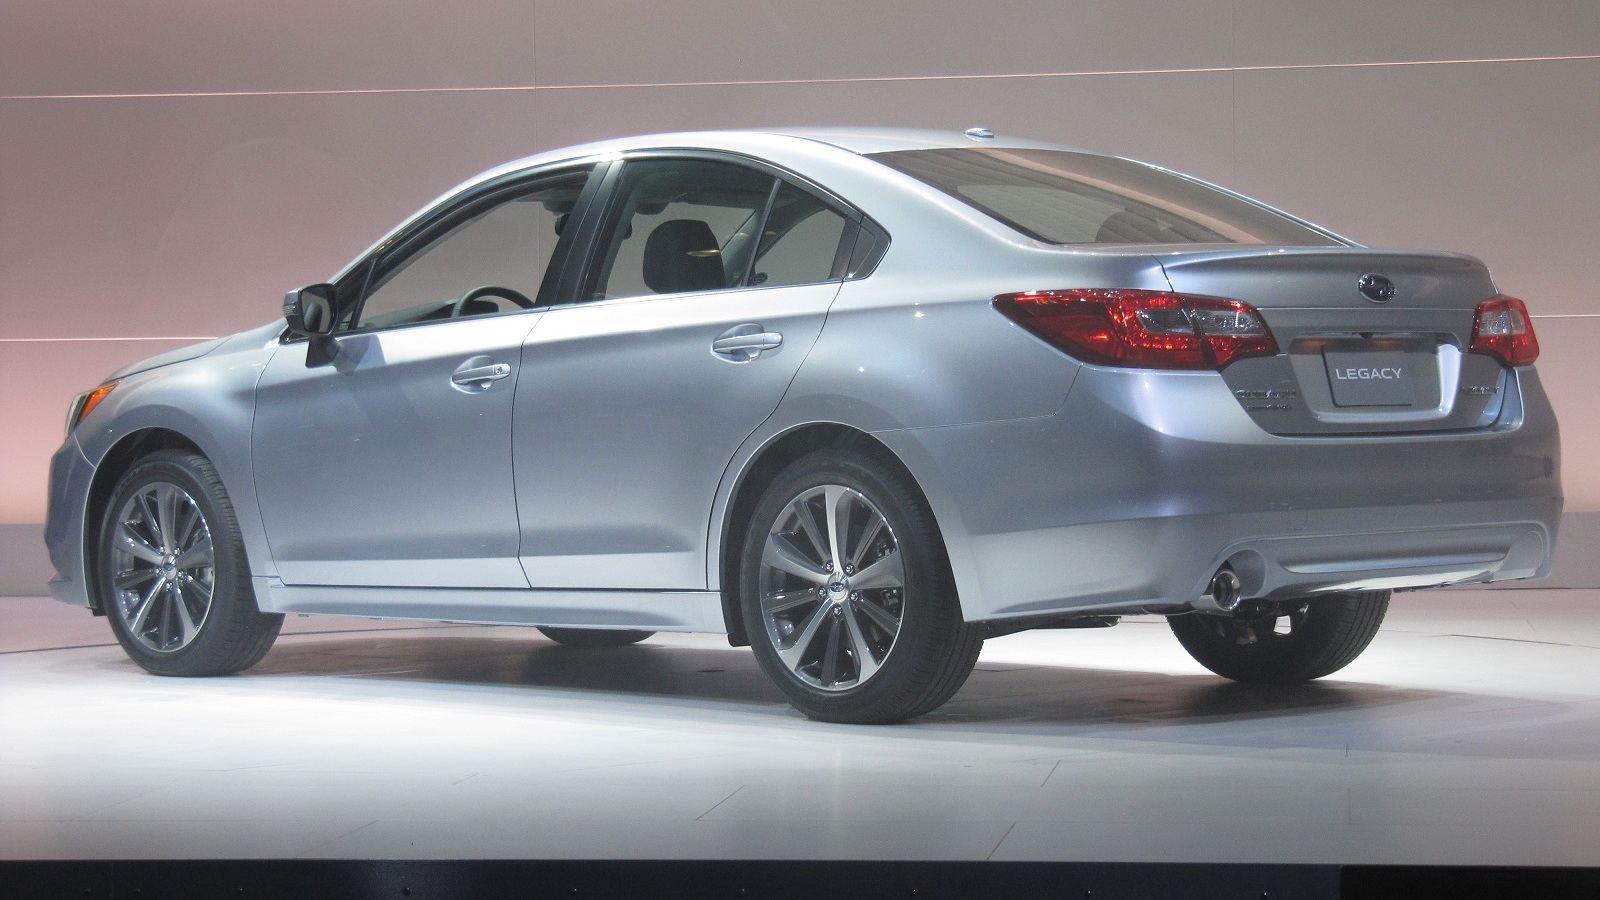 2015 Subaru Legacy launch at 2014 Chicago Auto Show